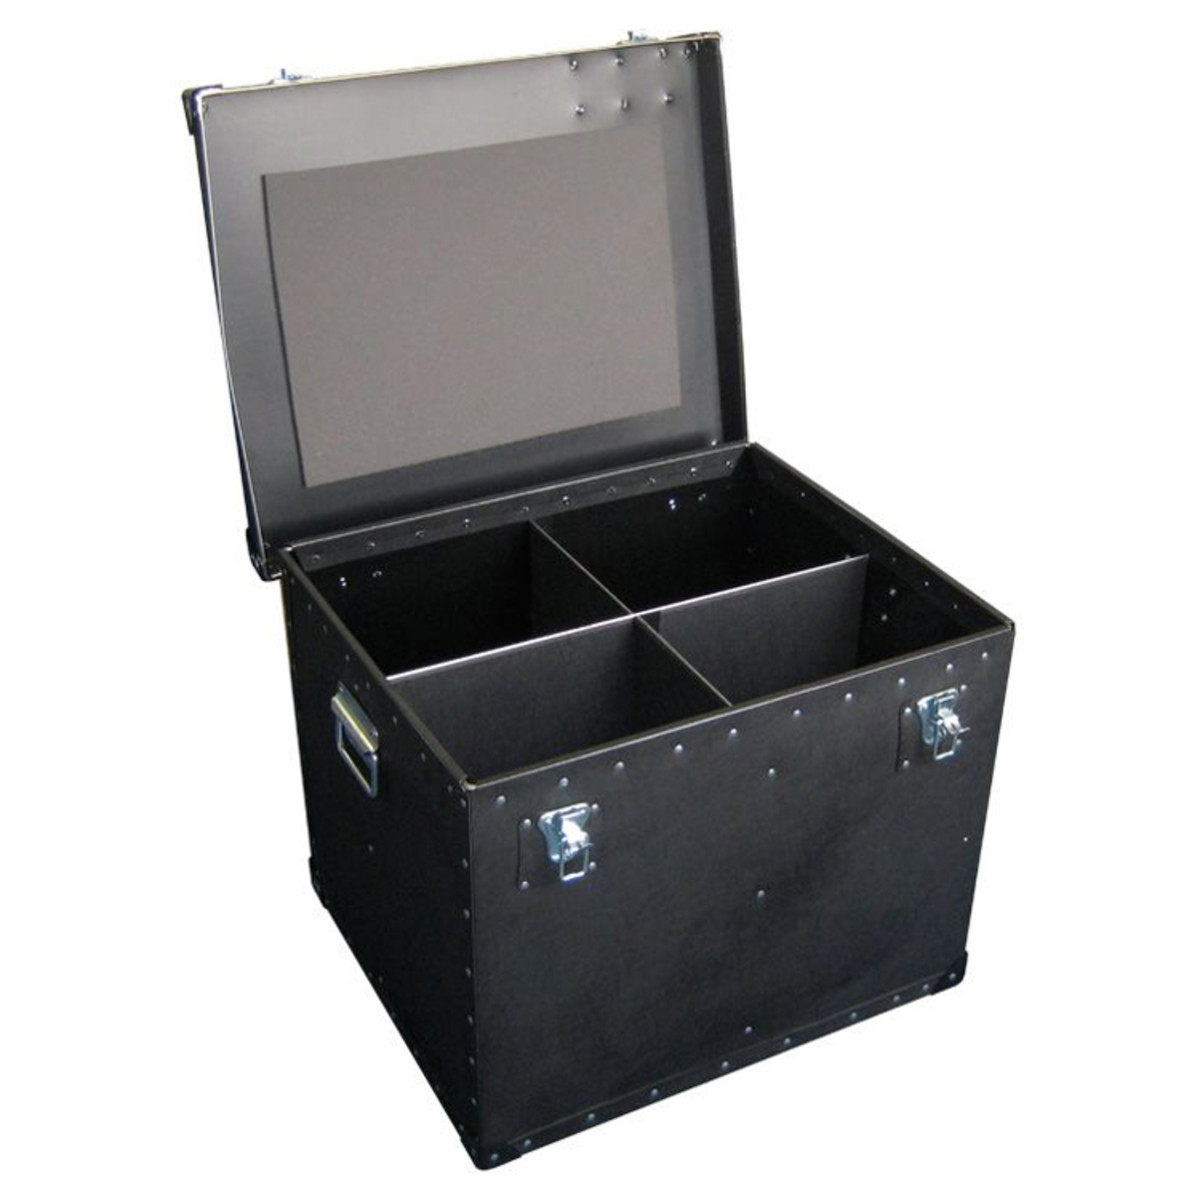 protex par can storage case holds 4 units at gear4music